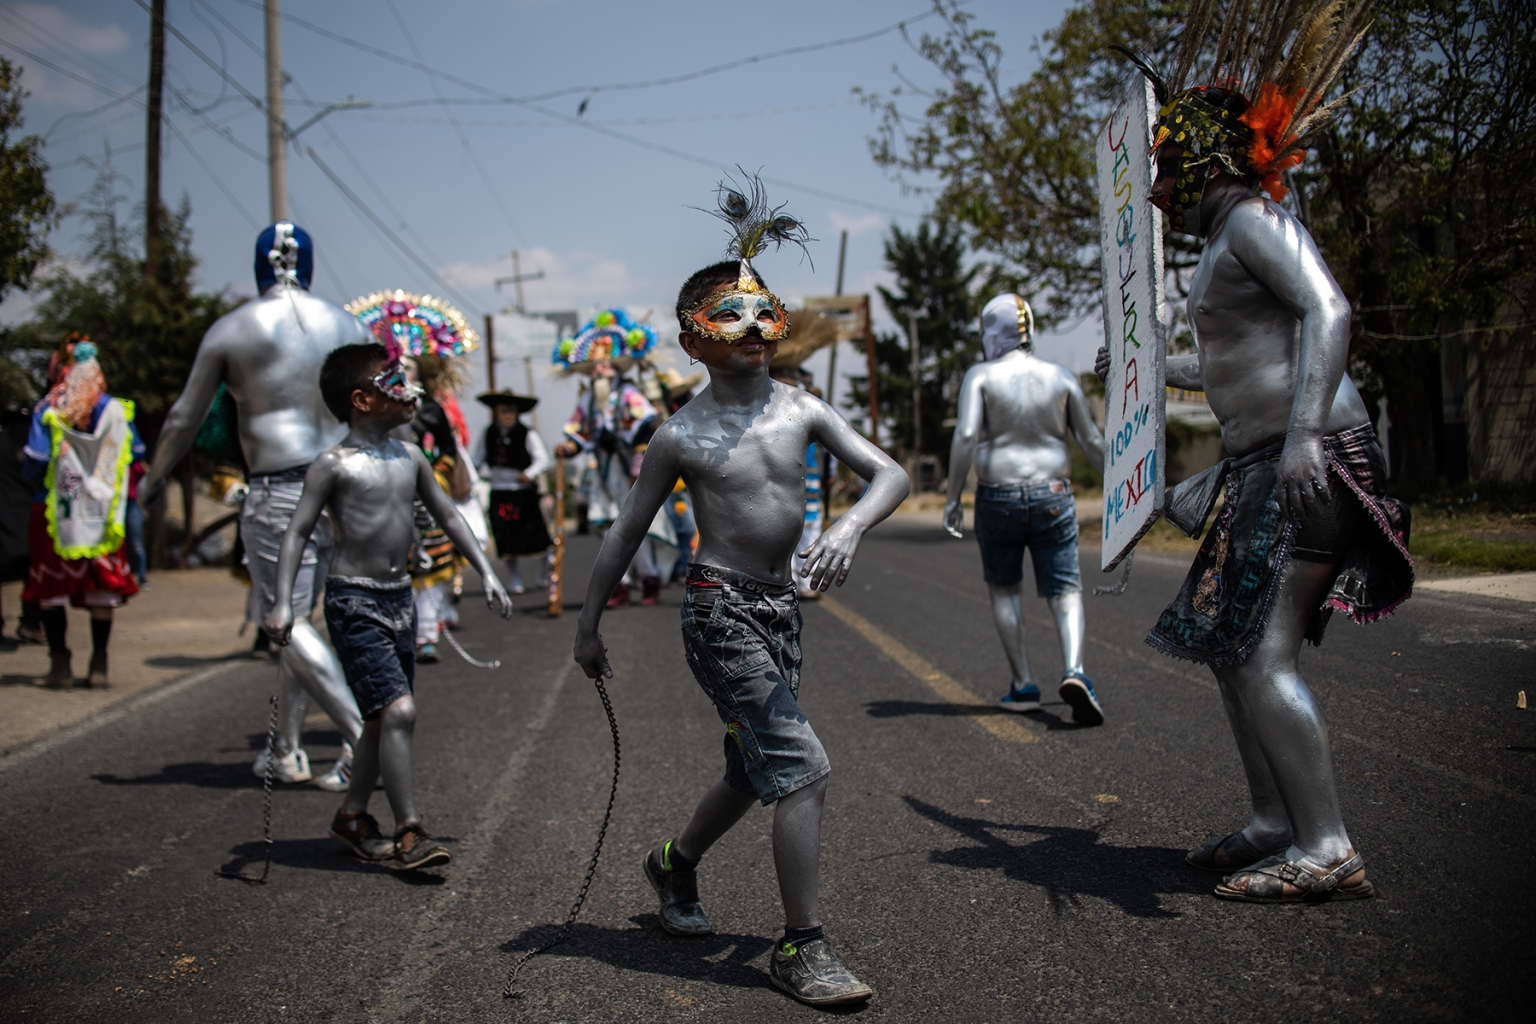 Young residents of the San Nicolas de los Ranchos community, in Puebla state, Mexico, wearing masks and with their bodies painted with oil, parade and dance in the town's traditional carnival on March 31. A ritual performed for good harvests, this year's event also honors the nearby Popocatepetl volcano, which has been increasingly active in recent days. PEDRO PARDO/AFP/Getty Images)